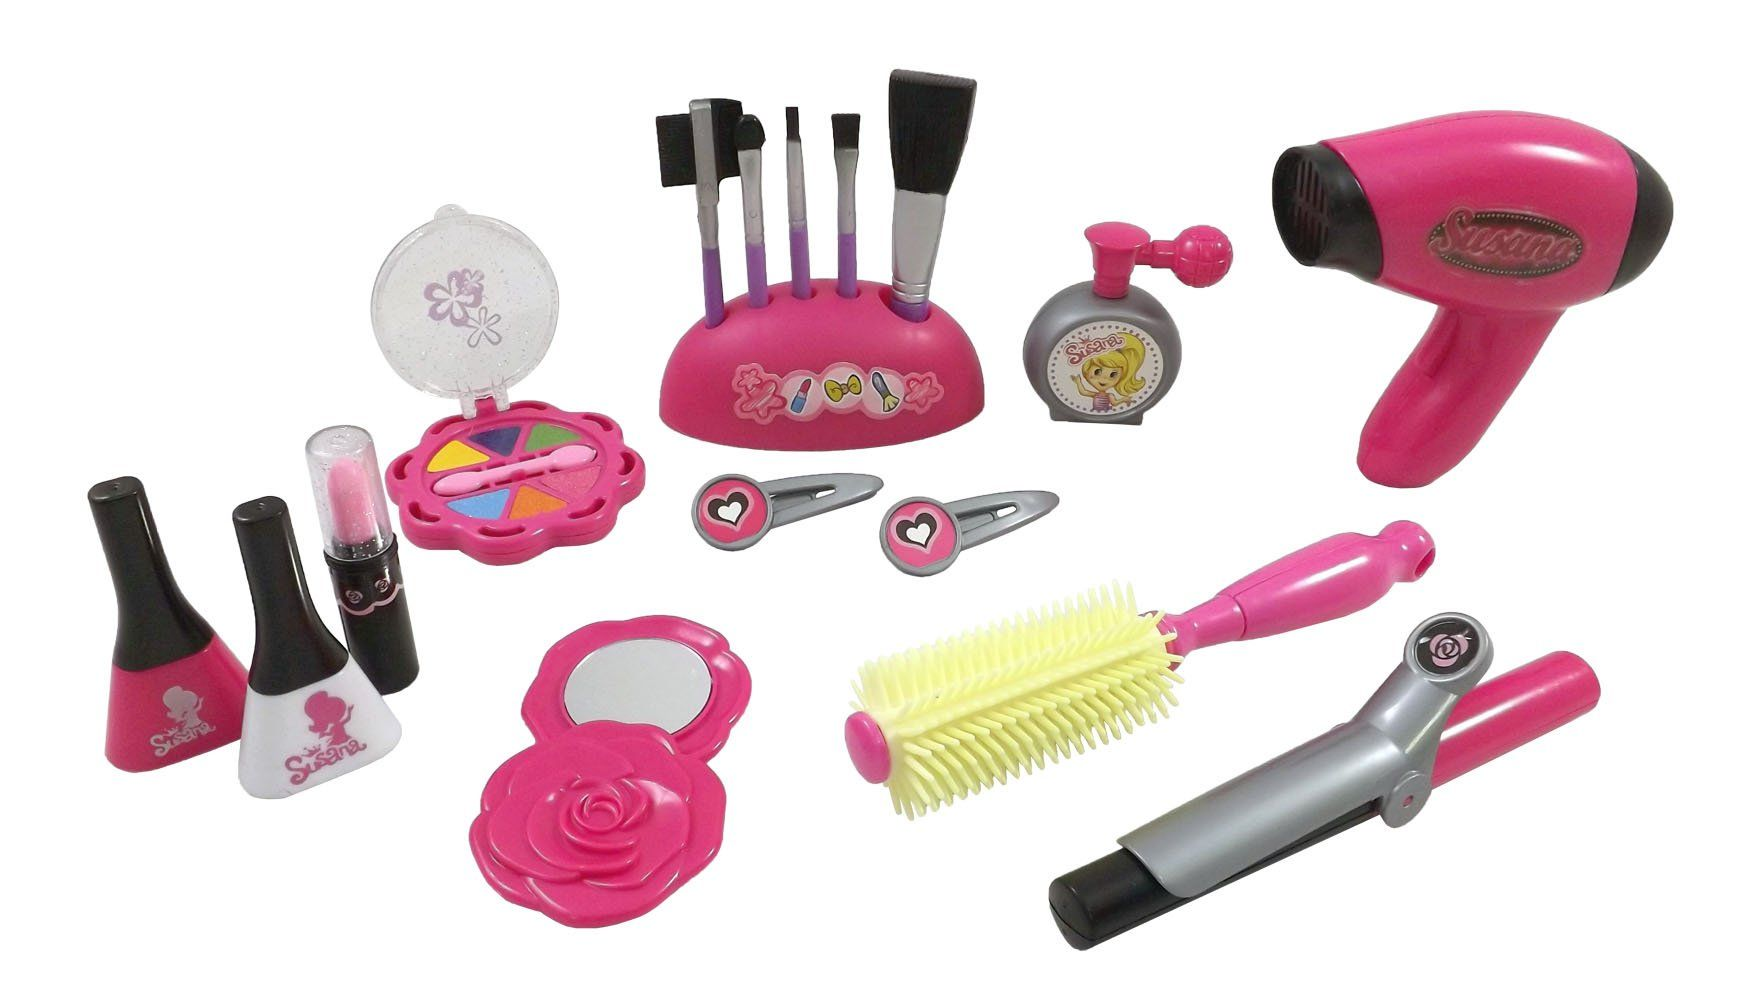 fb8a18634917 Stylish Girls Deluxe Beauty Salon Fashion Play Set with Hairdryer ...